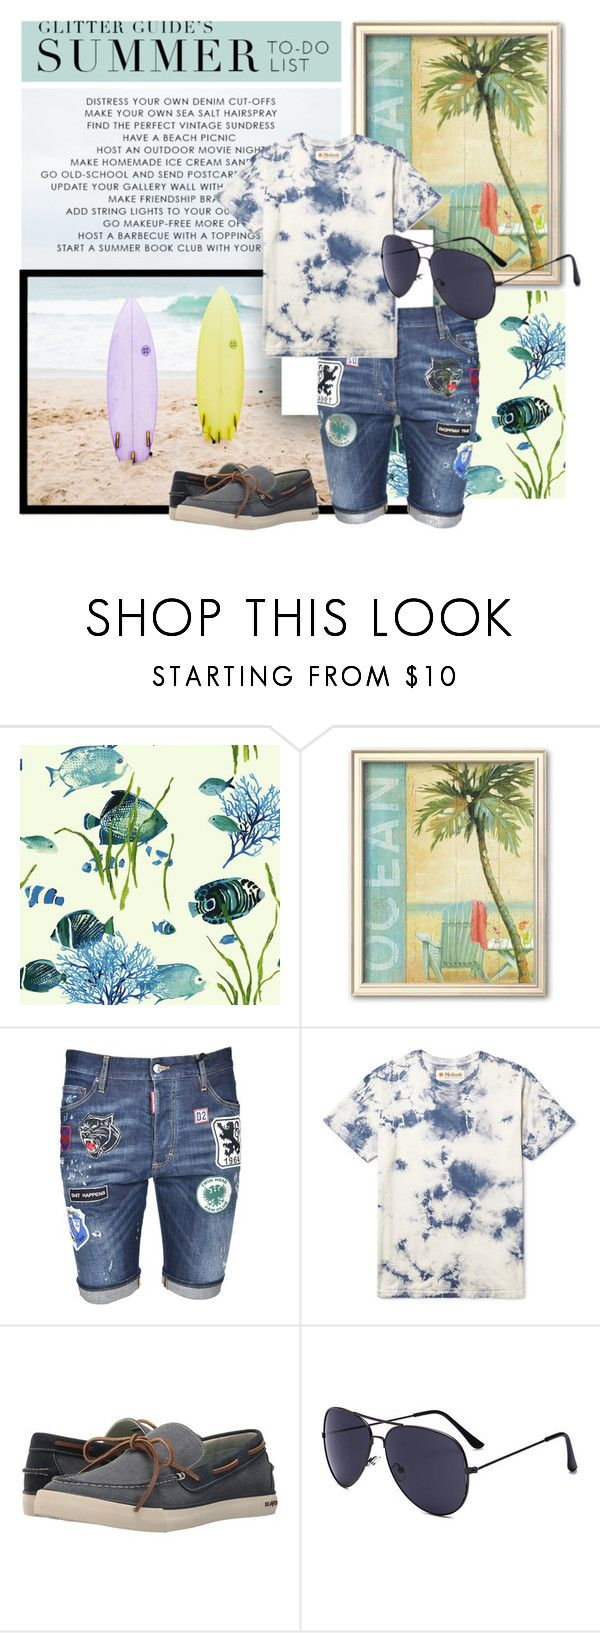 """""""men's beach style"""" by sahrish-hossain ❤ liked on Polyvore featuring Dsquared2, SeaVees, men's fashion, menswear, beachstyle, denimshorts, mensstyle and tiedieshirt"""